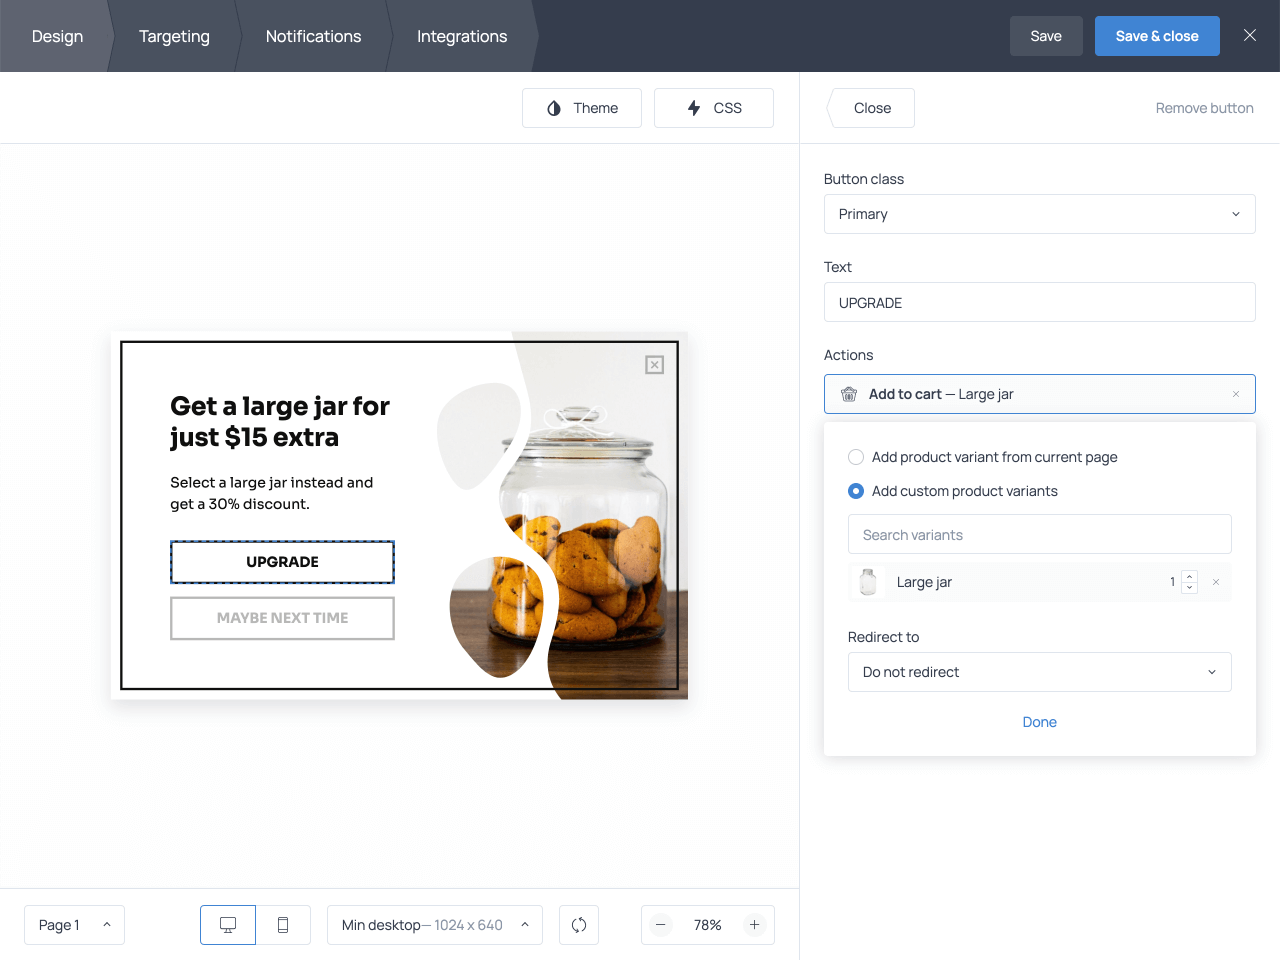 How to add a product upon a popup button click in Getsitecontrol